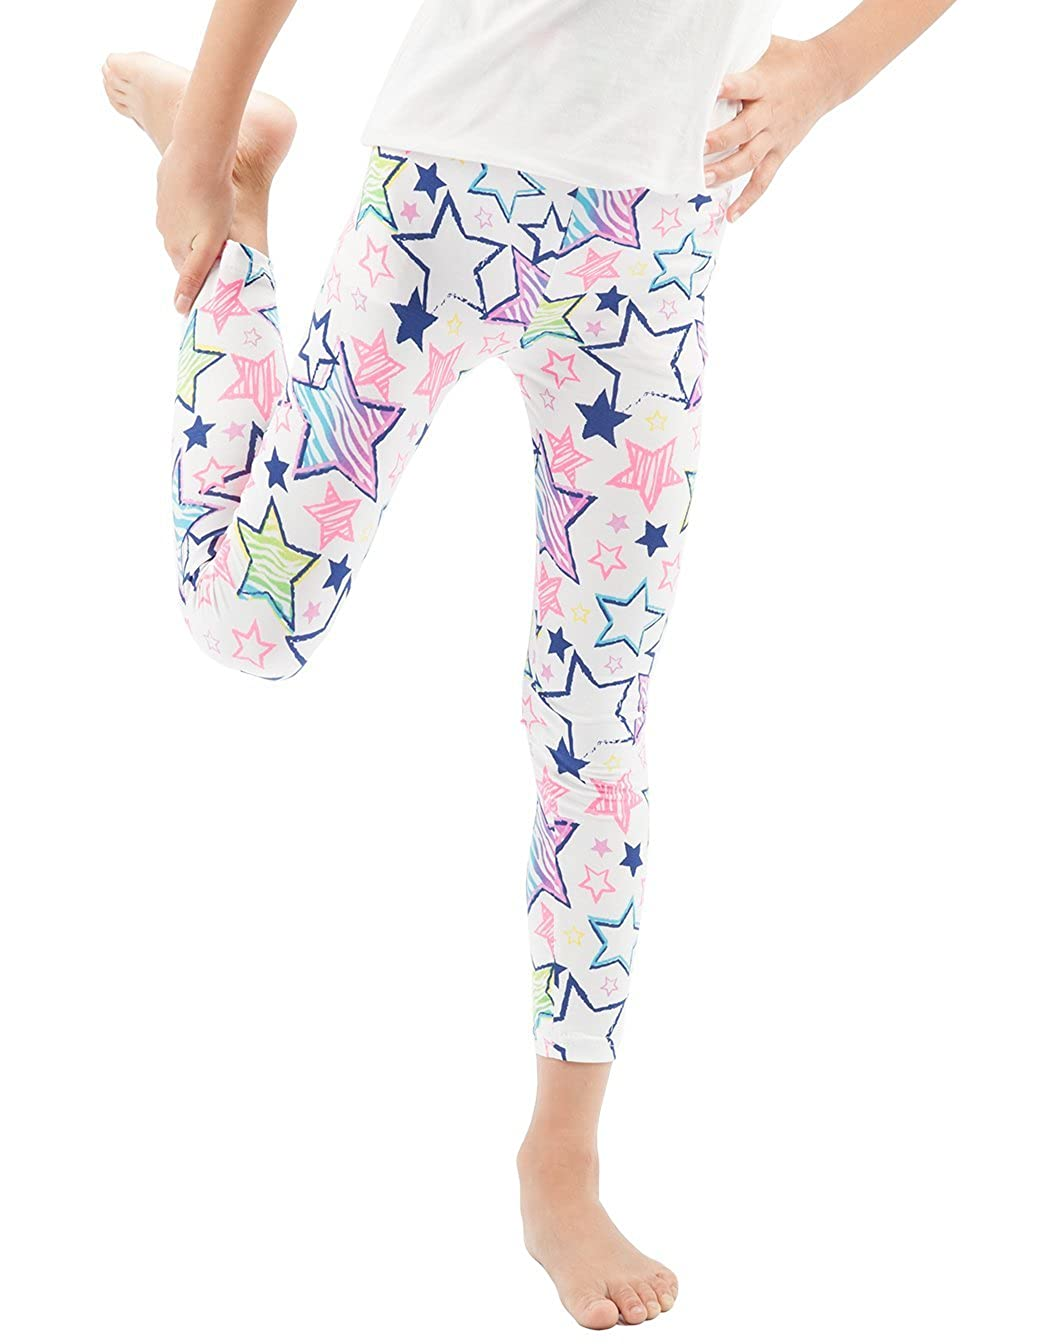 WEWINK PLUS Girls Toddler Leggings Pants 3 Pack Stretchy Printing Flower Classic Leggings for Kids